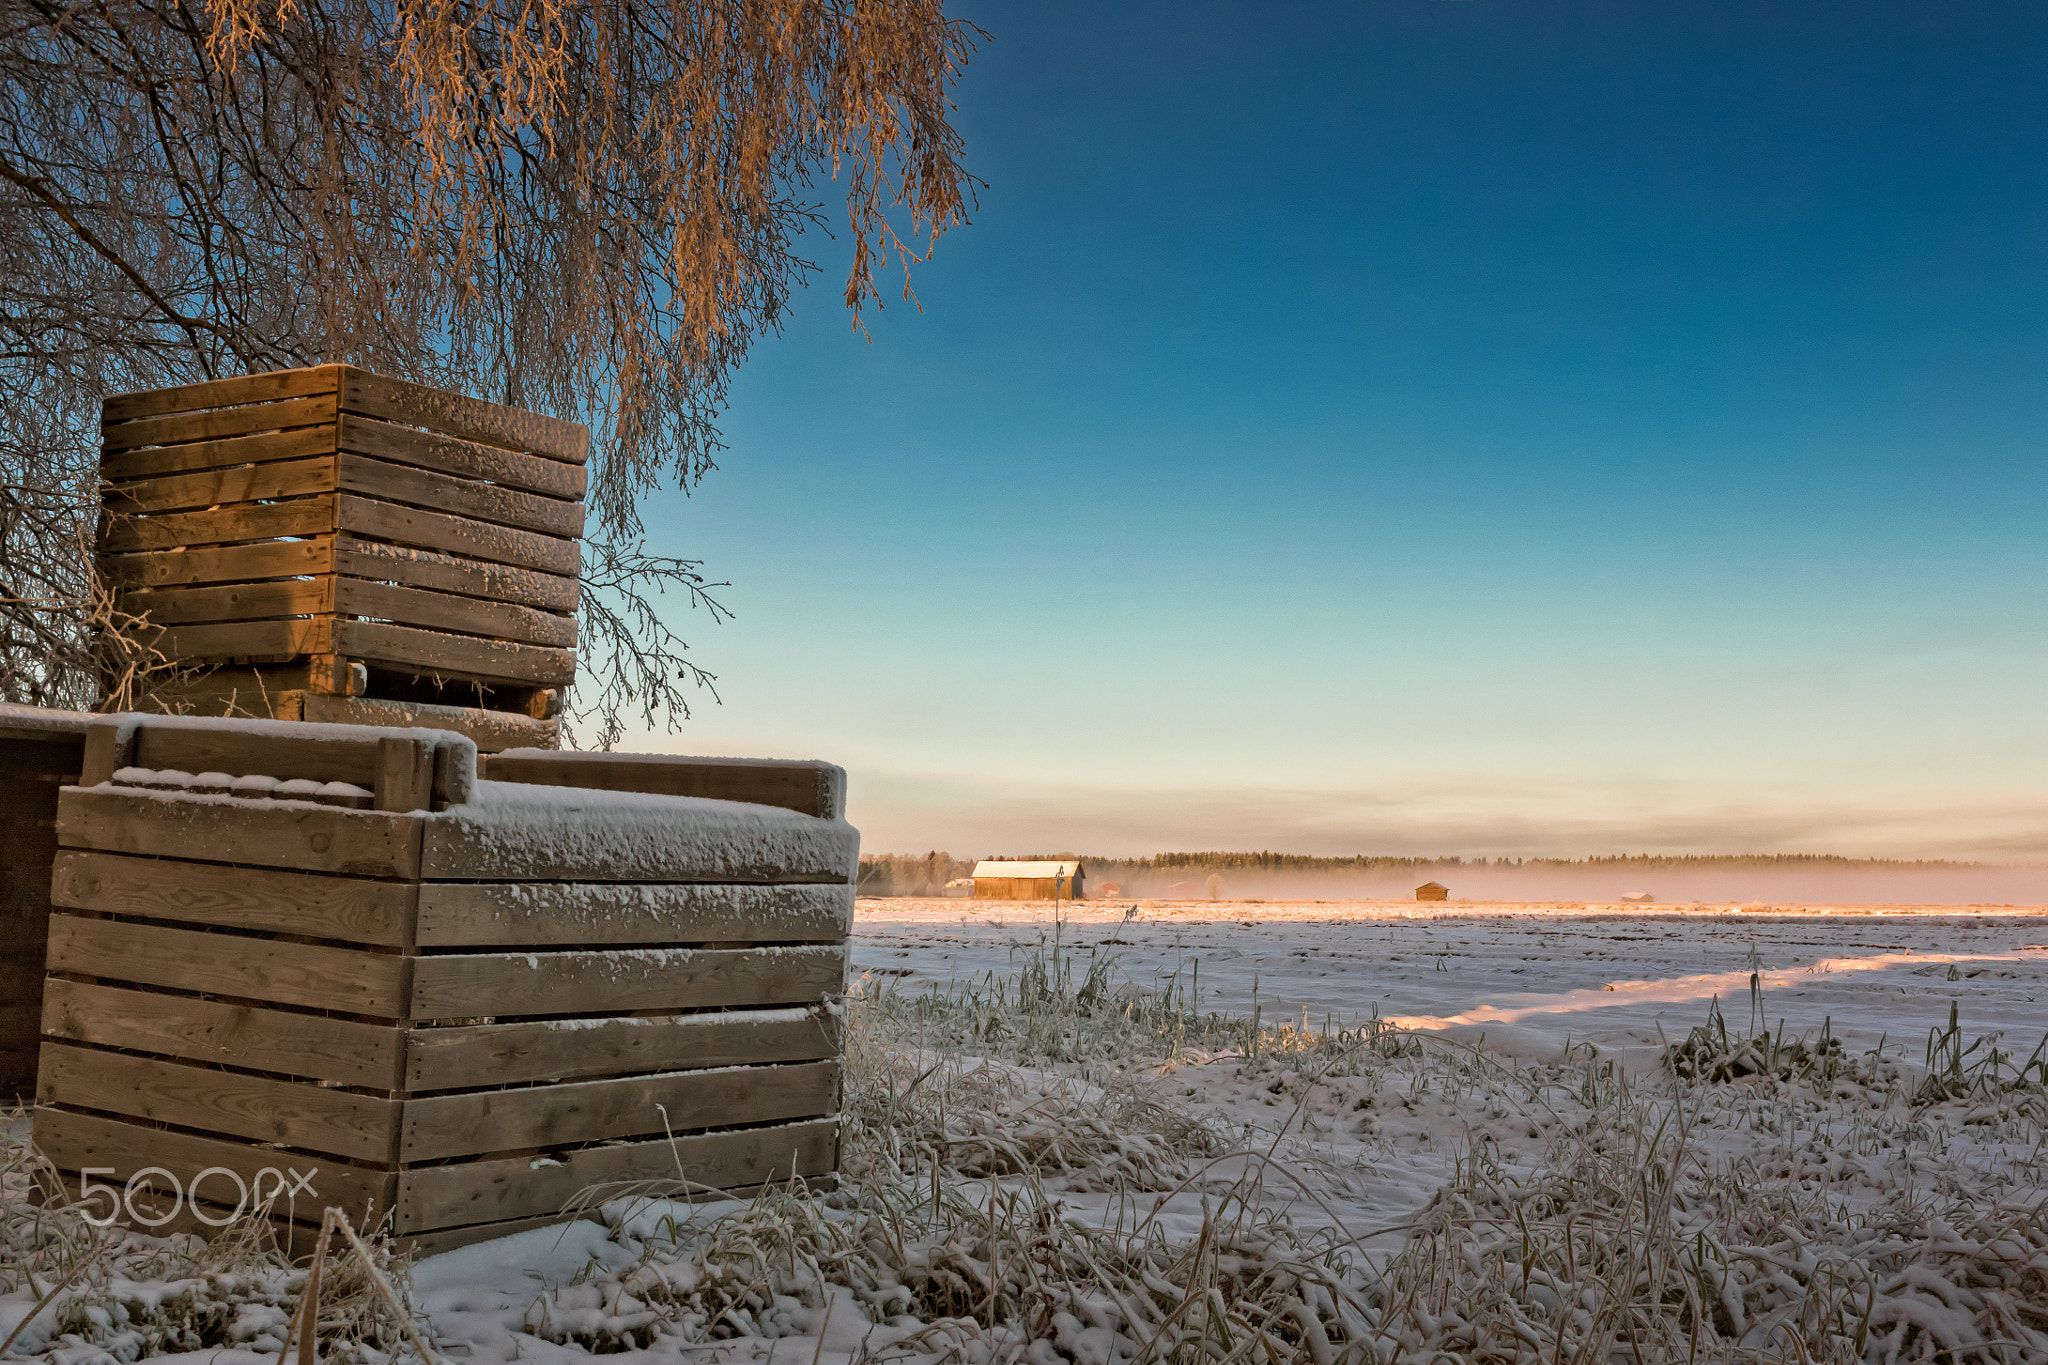 Frosty Crates By The Fields